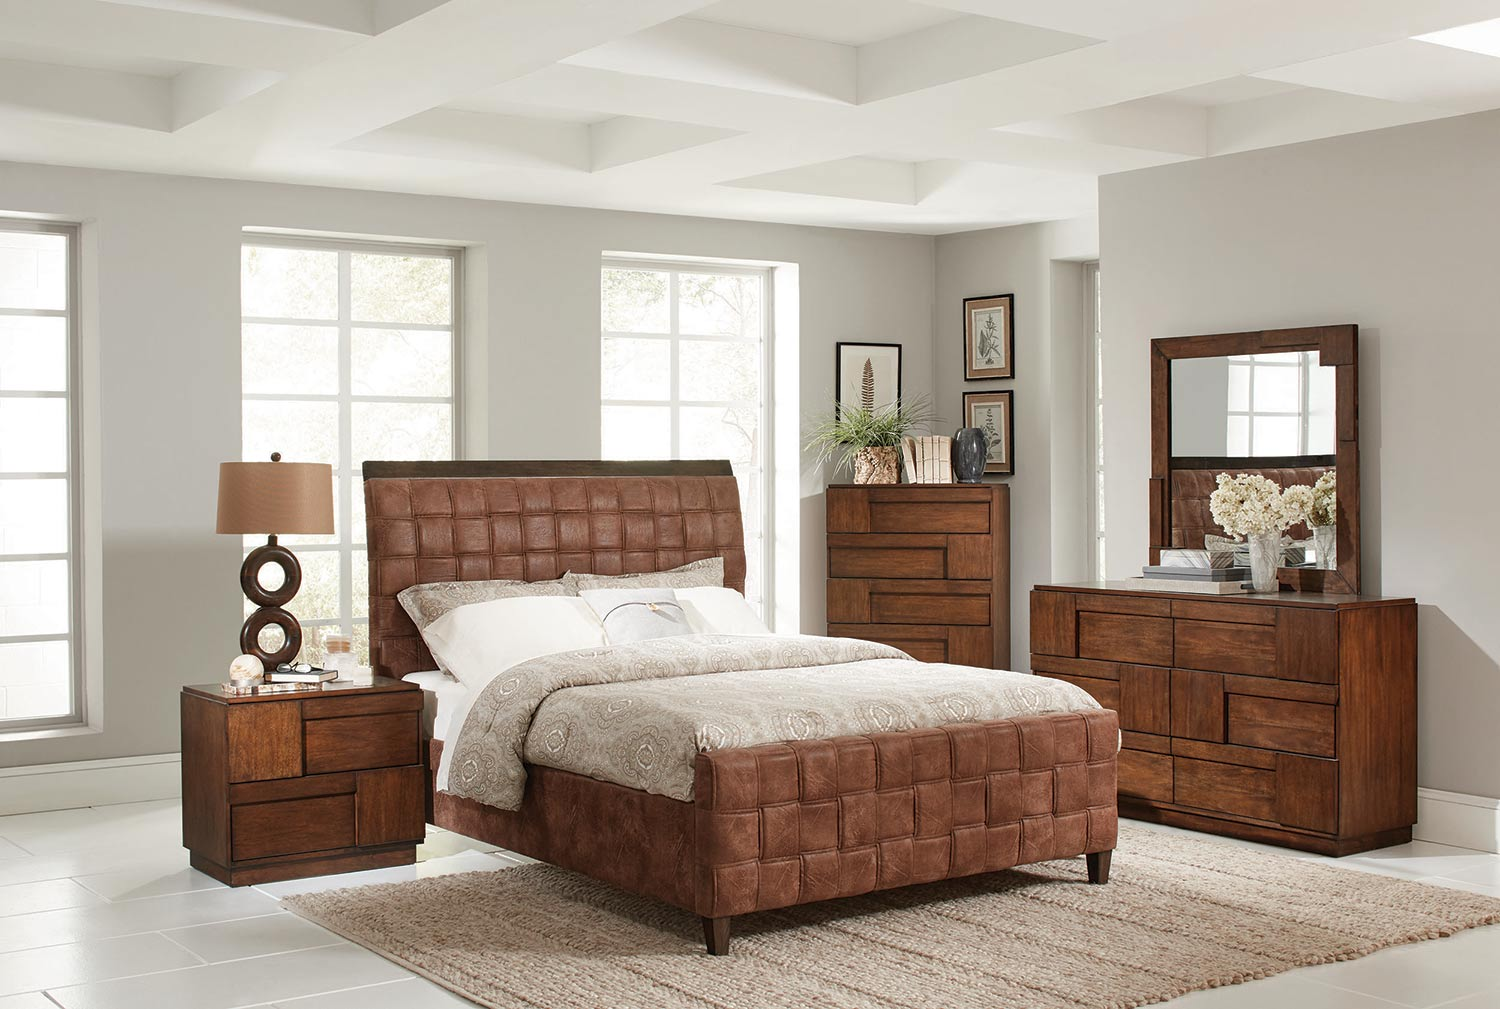 Coaster Gallagher Bedroom Collection - Golden Brown - Coated Brown Microfiber